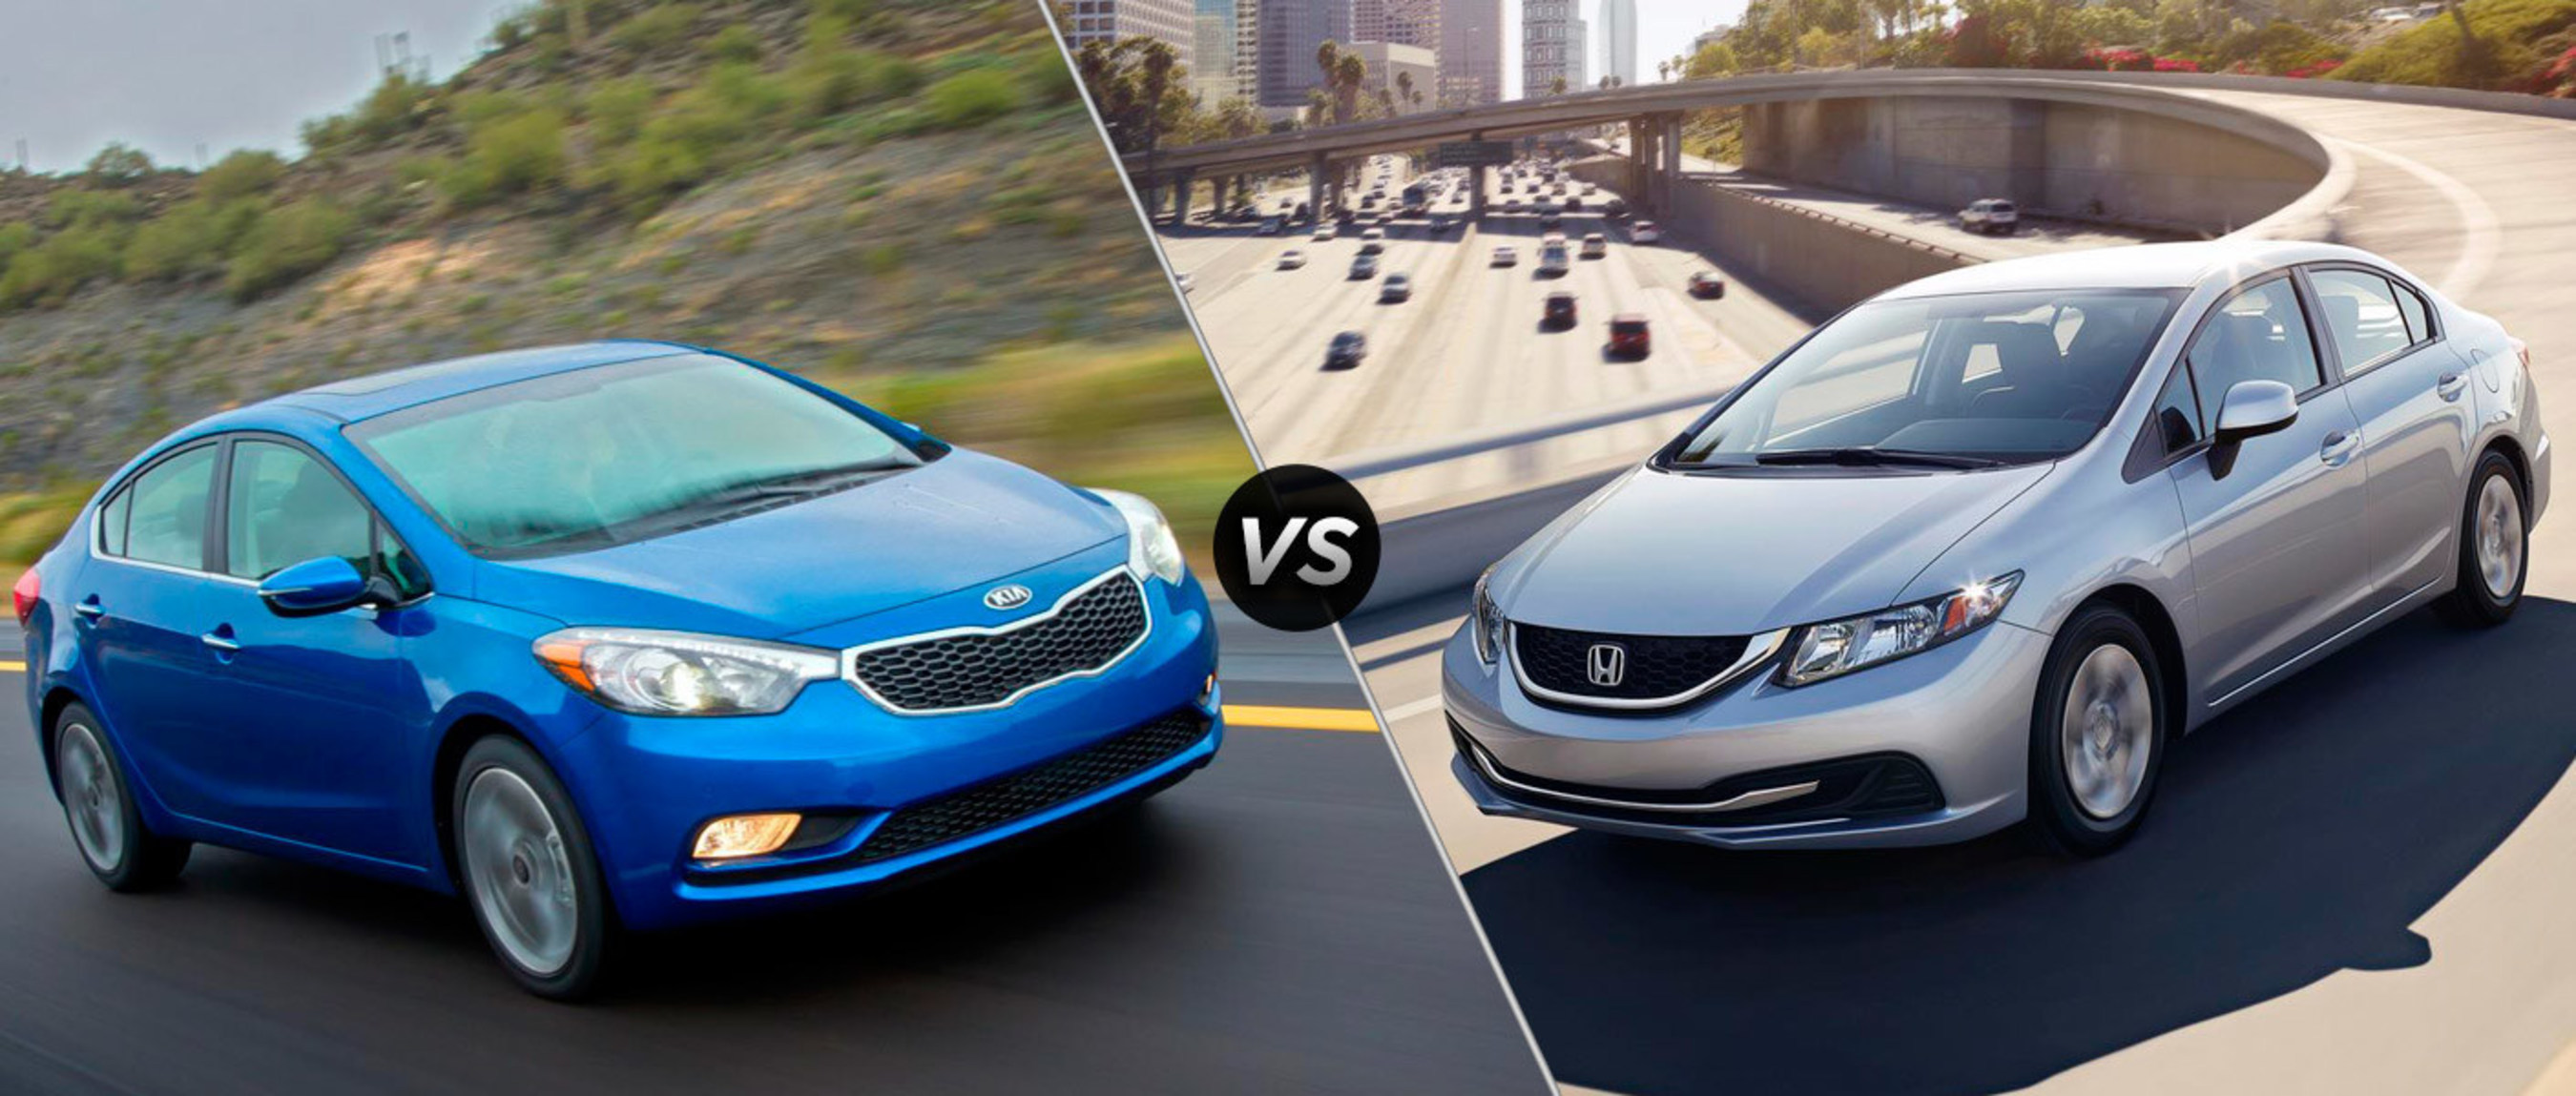 2015 Kia Forte vs 2015 Honda Civic comparison highlights key features of each vehicle